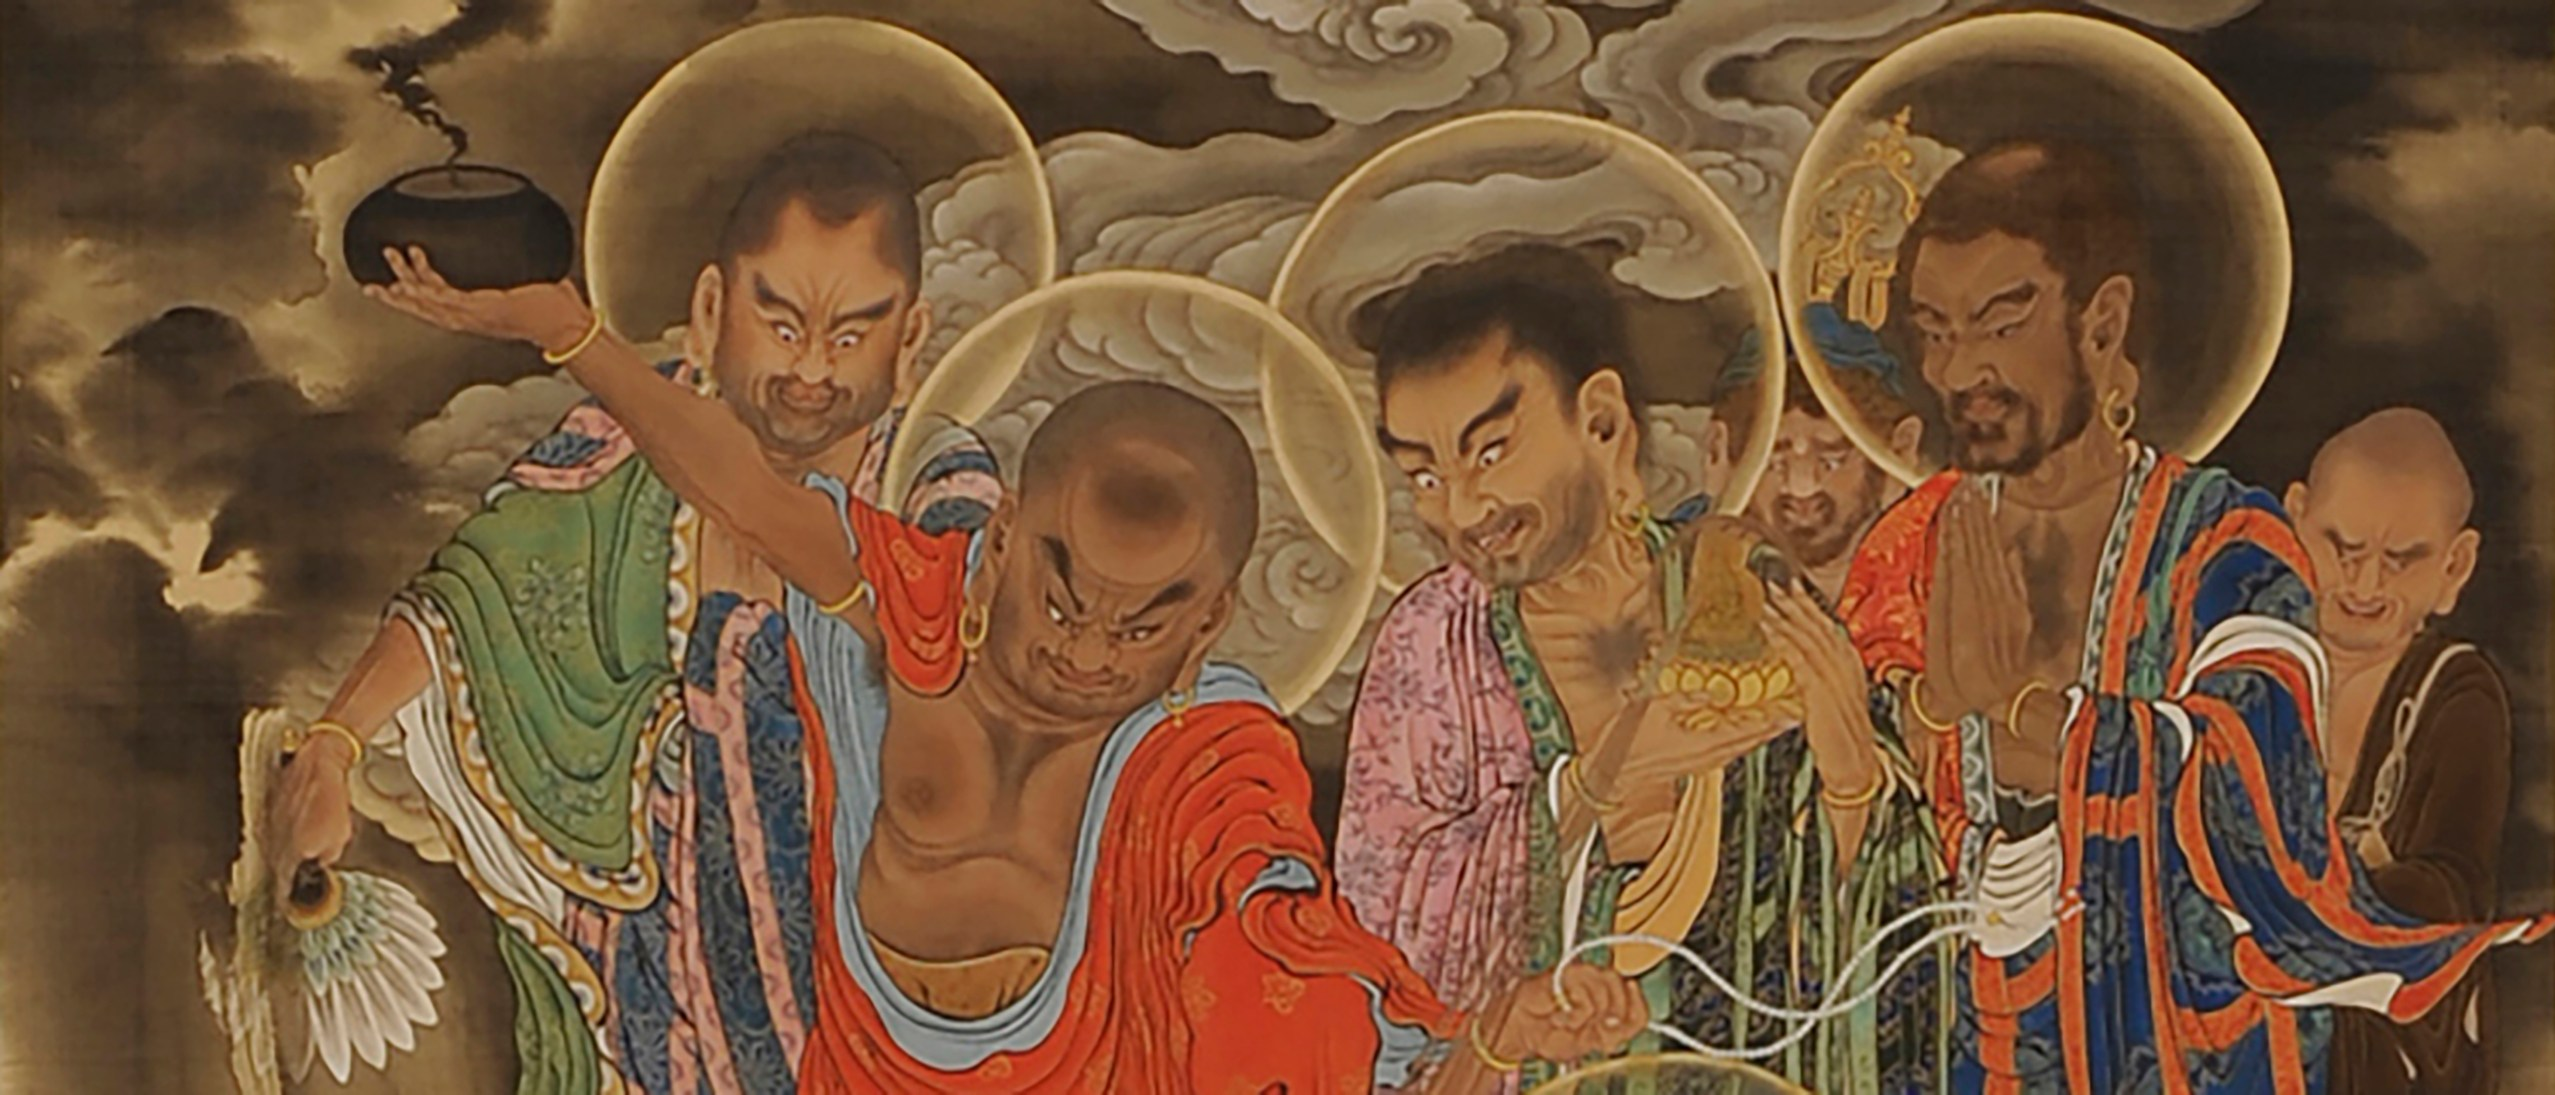 Detail image, The Six Realms: Hell, Five Hundred Arhats: Scroll 22; Kano Kazunobu (1816–63); Japan, Edo Period, ca. 1854–63; Hanging scroll, ink and color on silk; Collection, Zōjōji, Tokyo